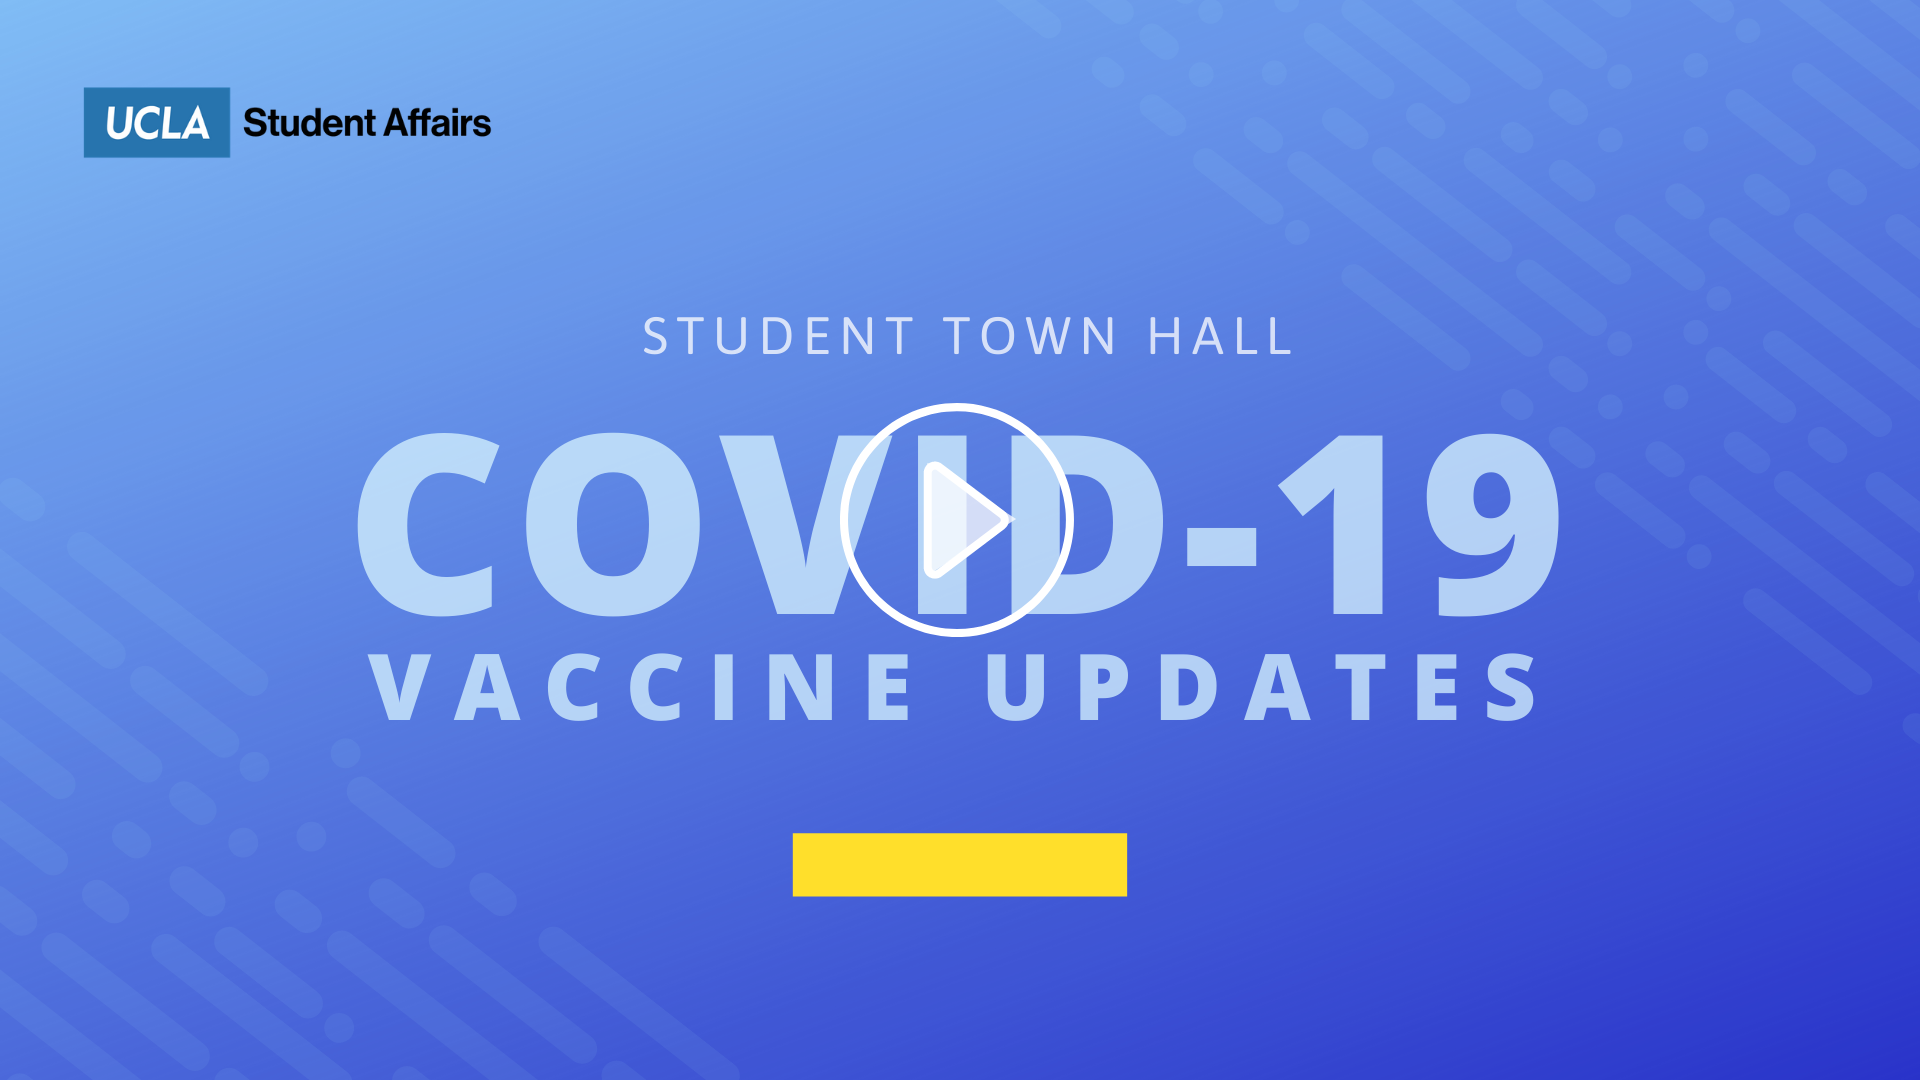 Student Townhall COVID-19 Vaccine Updates